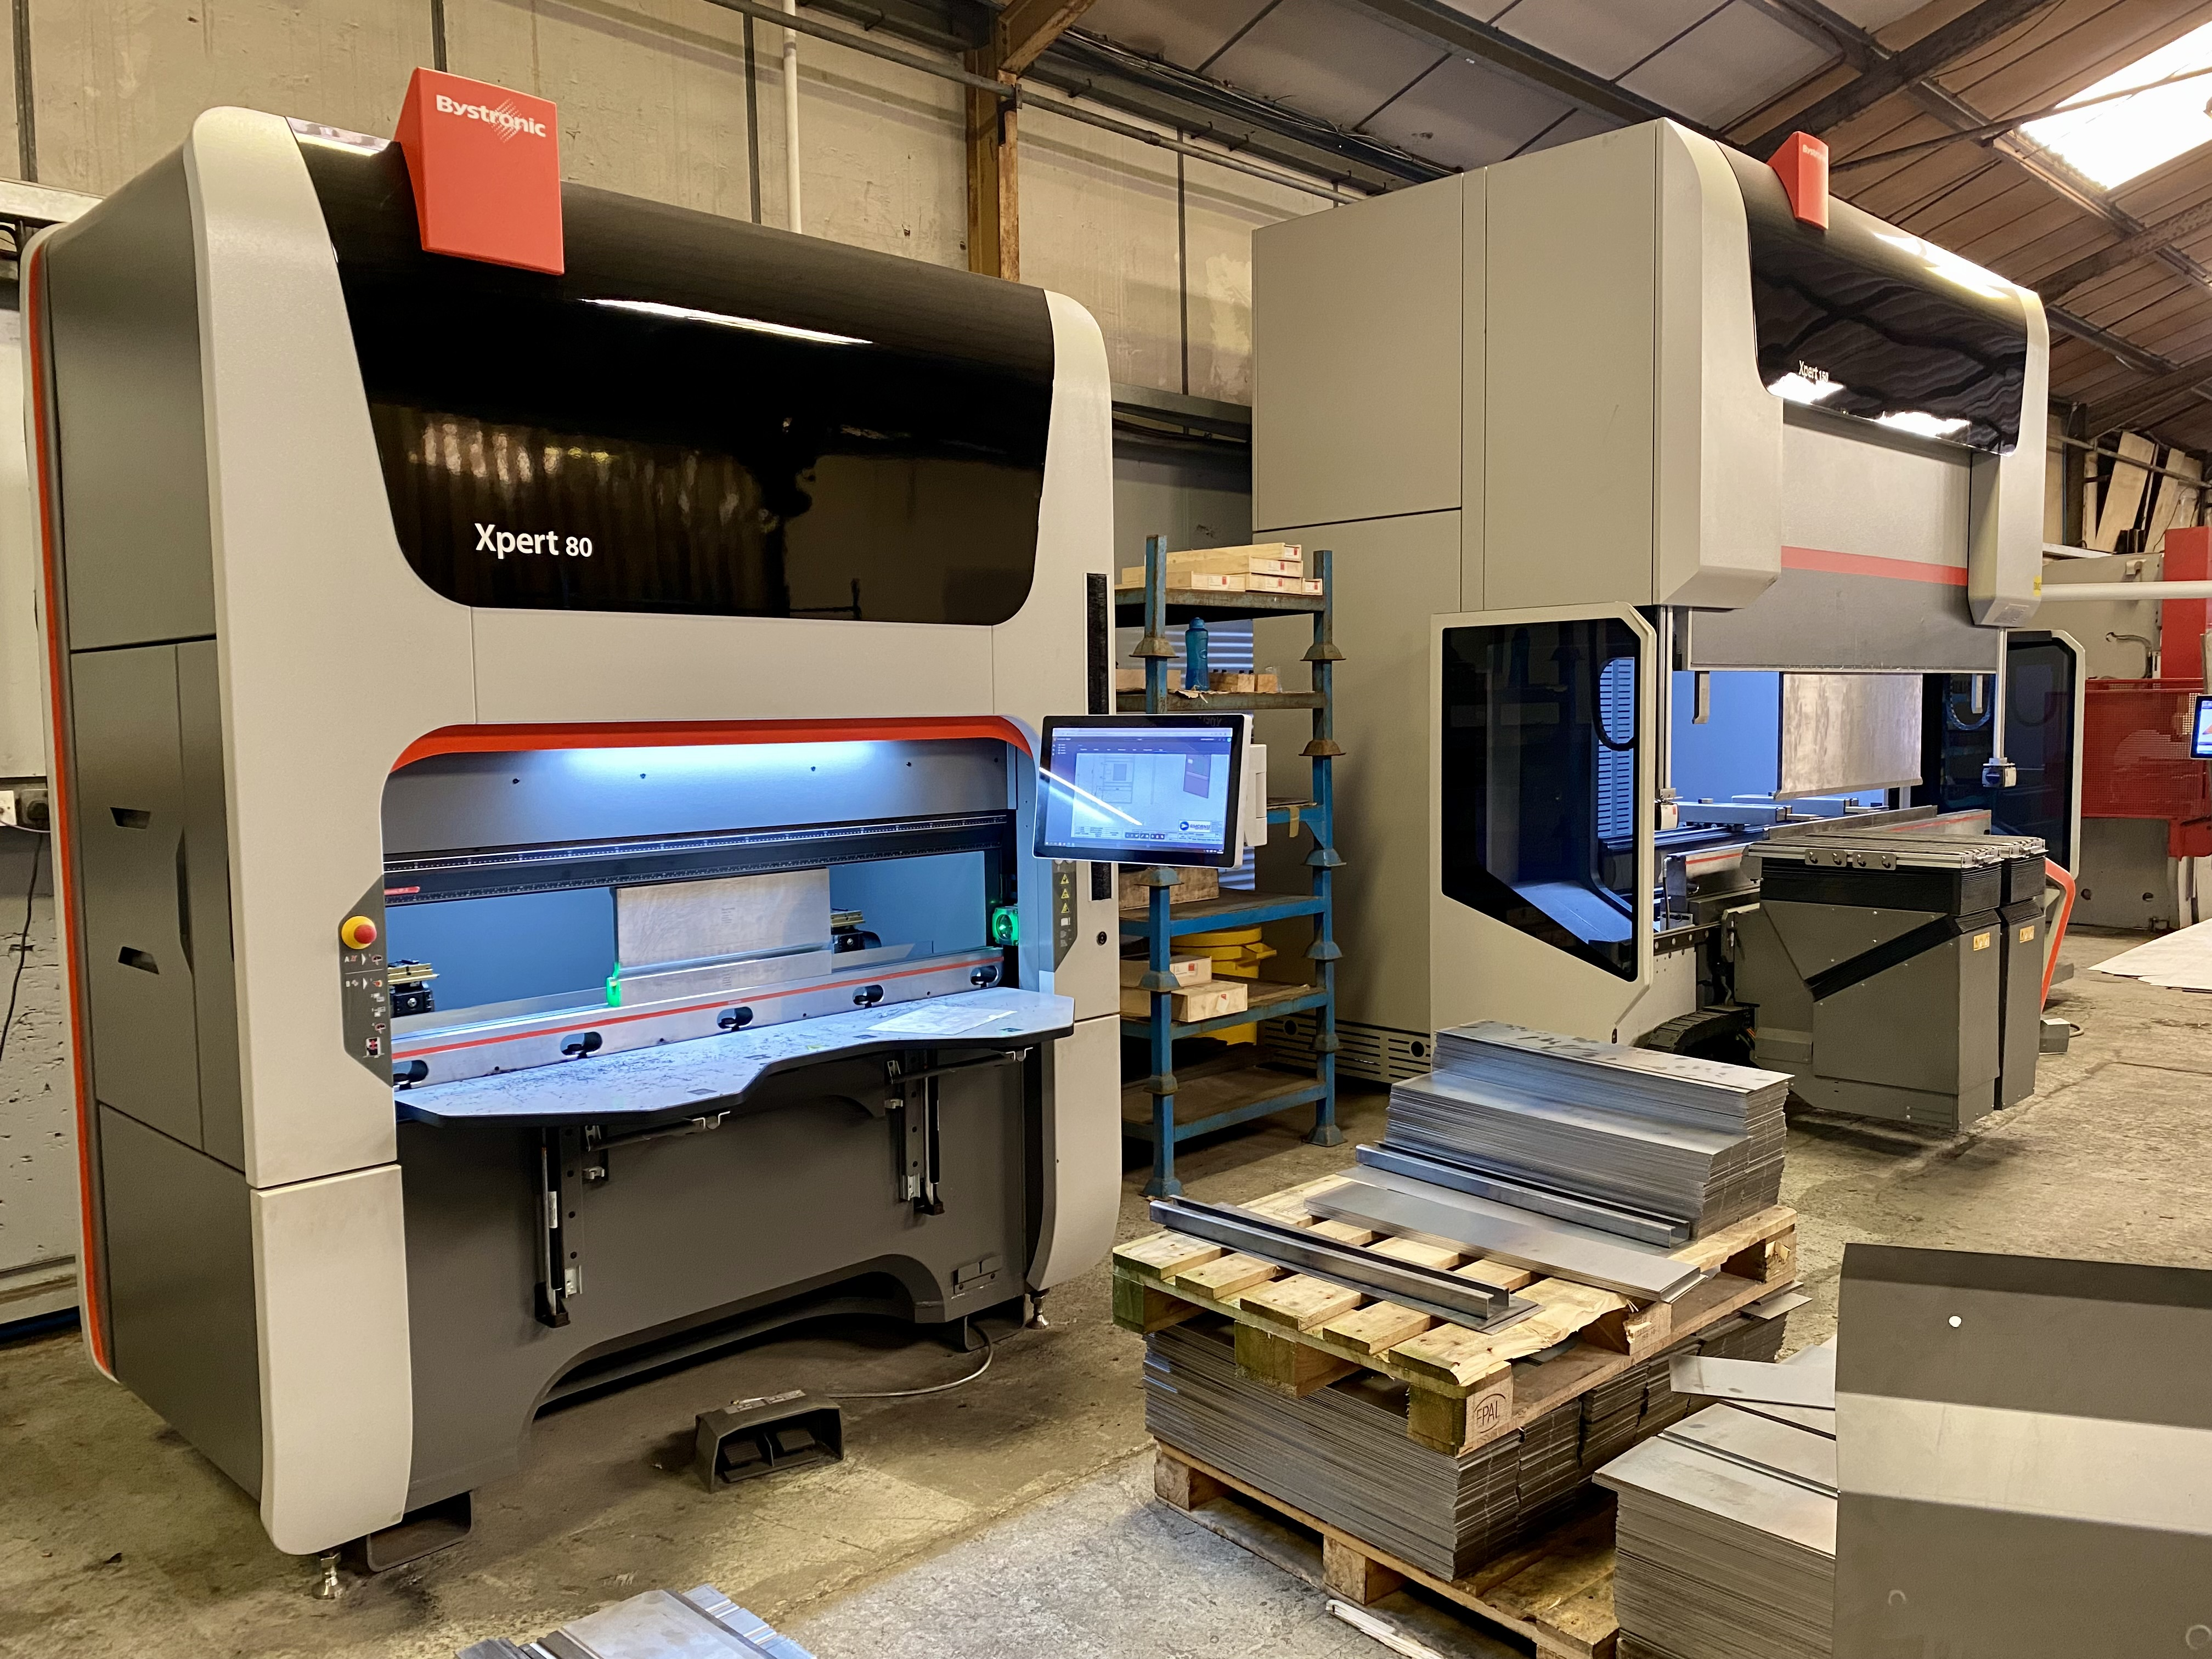 The Bystronic Xpert 80 Press Brake in the Amcanu factory.